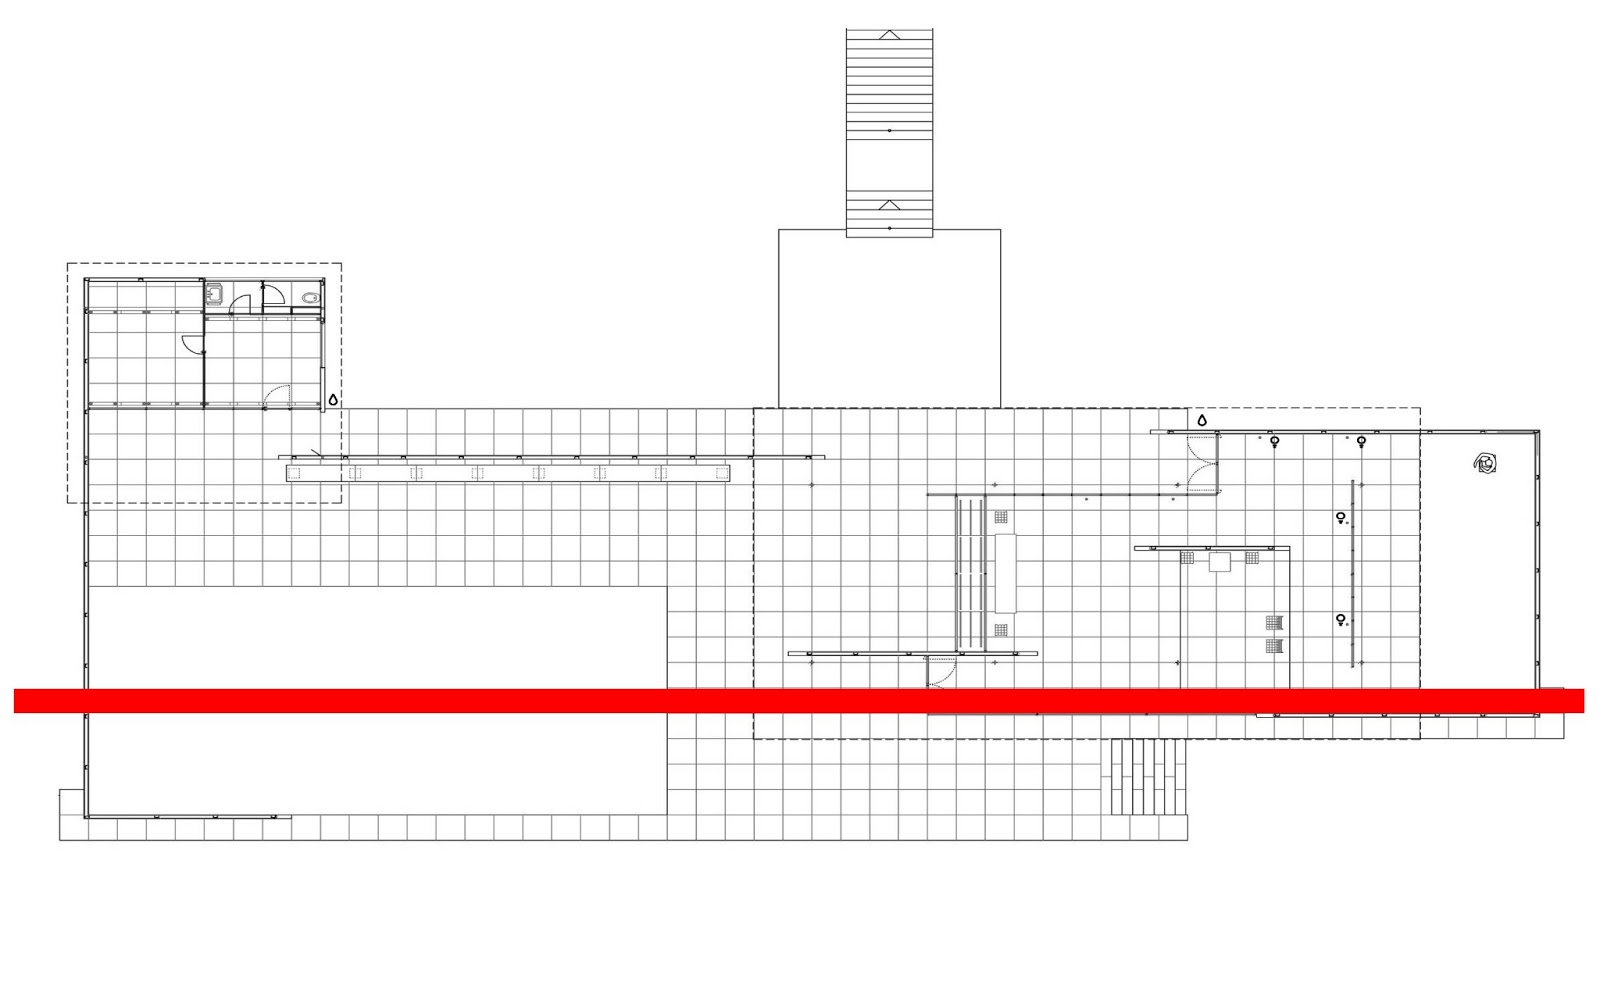 Barcelona pavilion plan - Mies Van Der Rohe S Barcelona Pavilion Plan Which Best Suits My Concept Of Minimalism And His Quote Less Is More